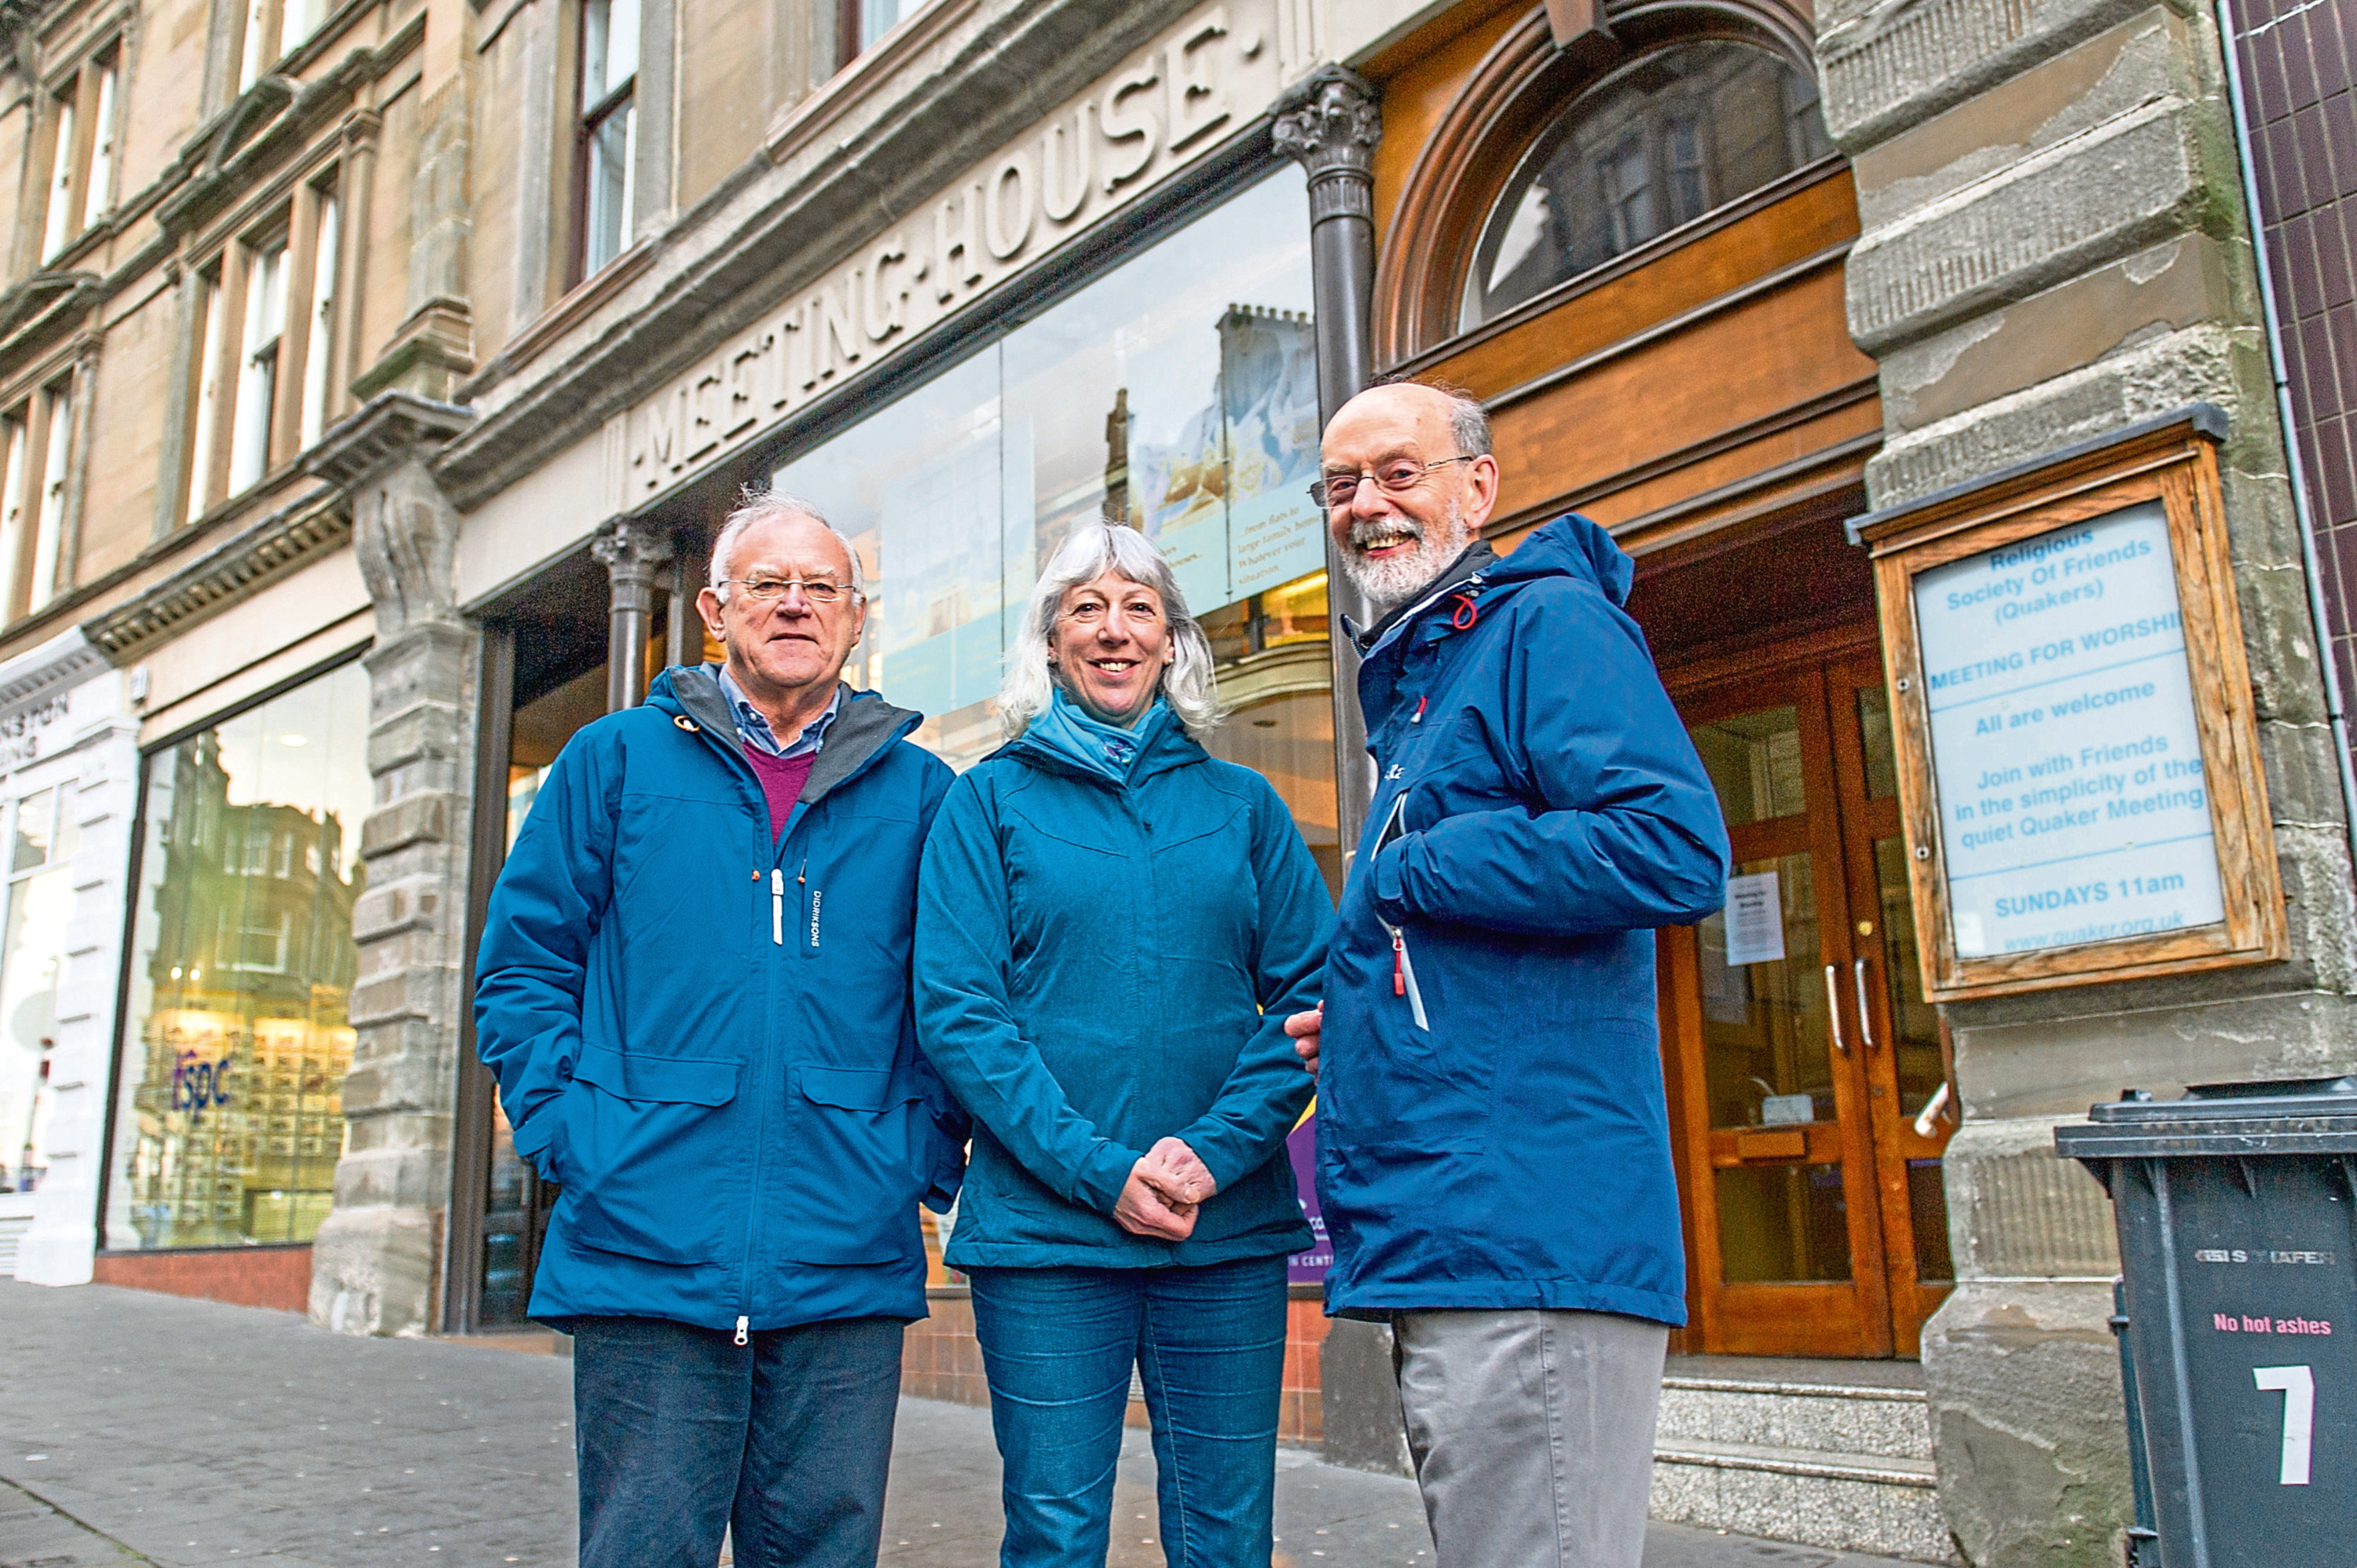 Bill Edgar, Marion Sharkey and Martin Pippard outside the property they hope to move back to. The original sign is carved into the stonework of the building